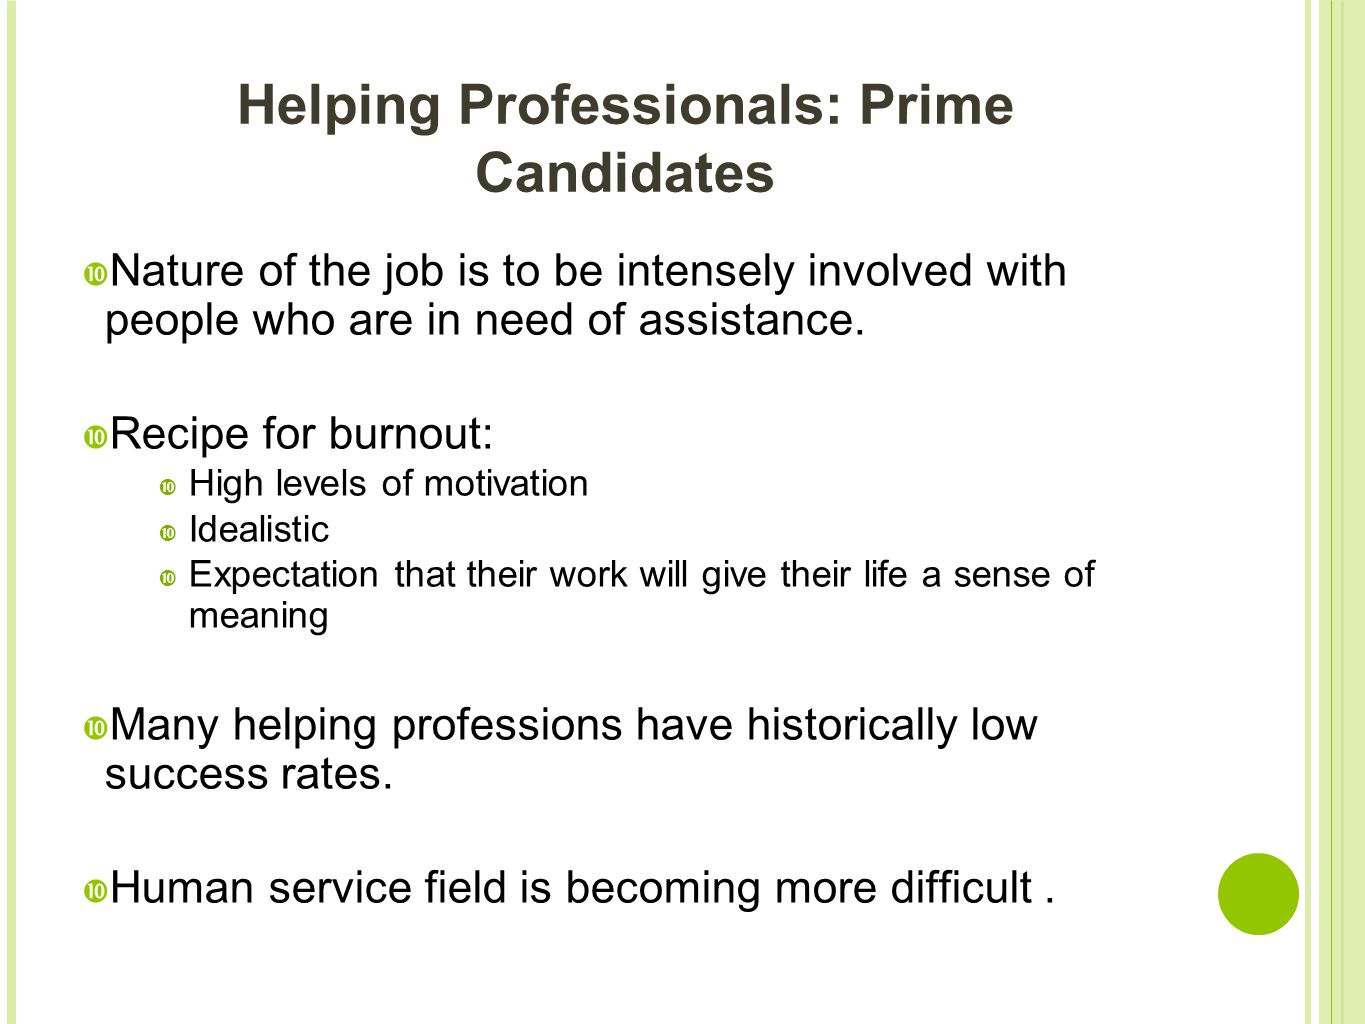 Helping Professionals: Prime Candidates